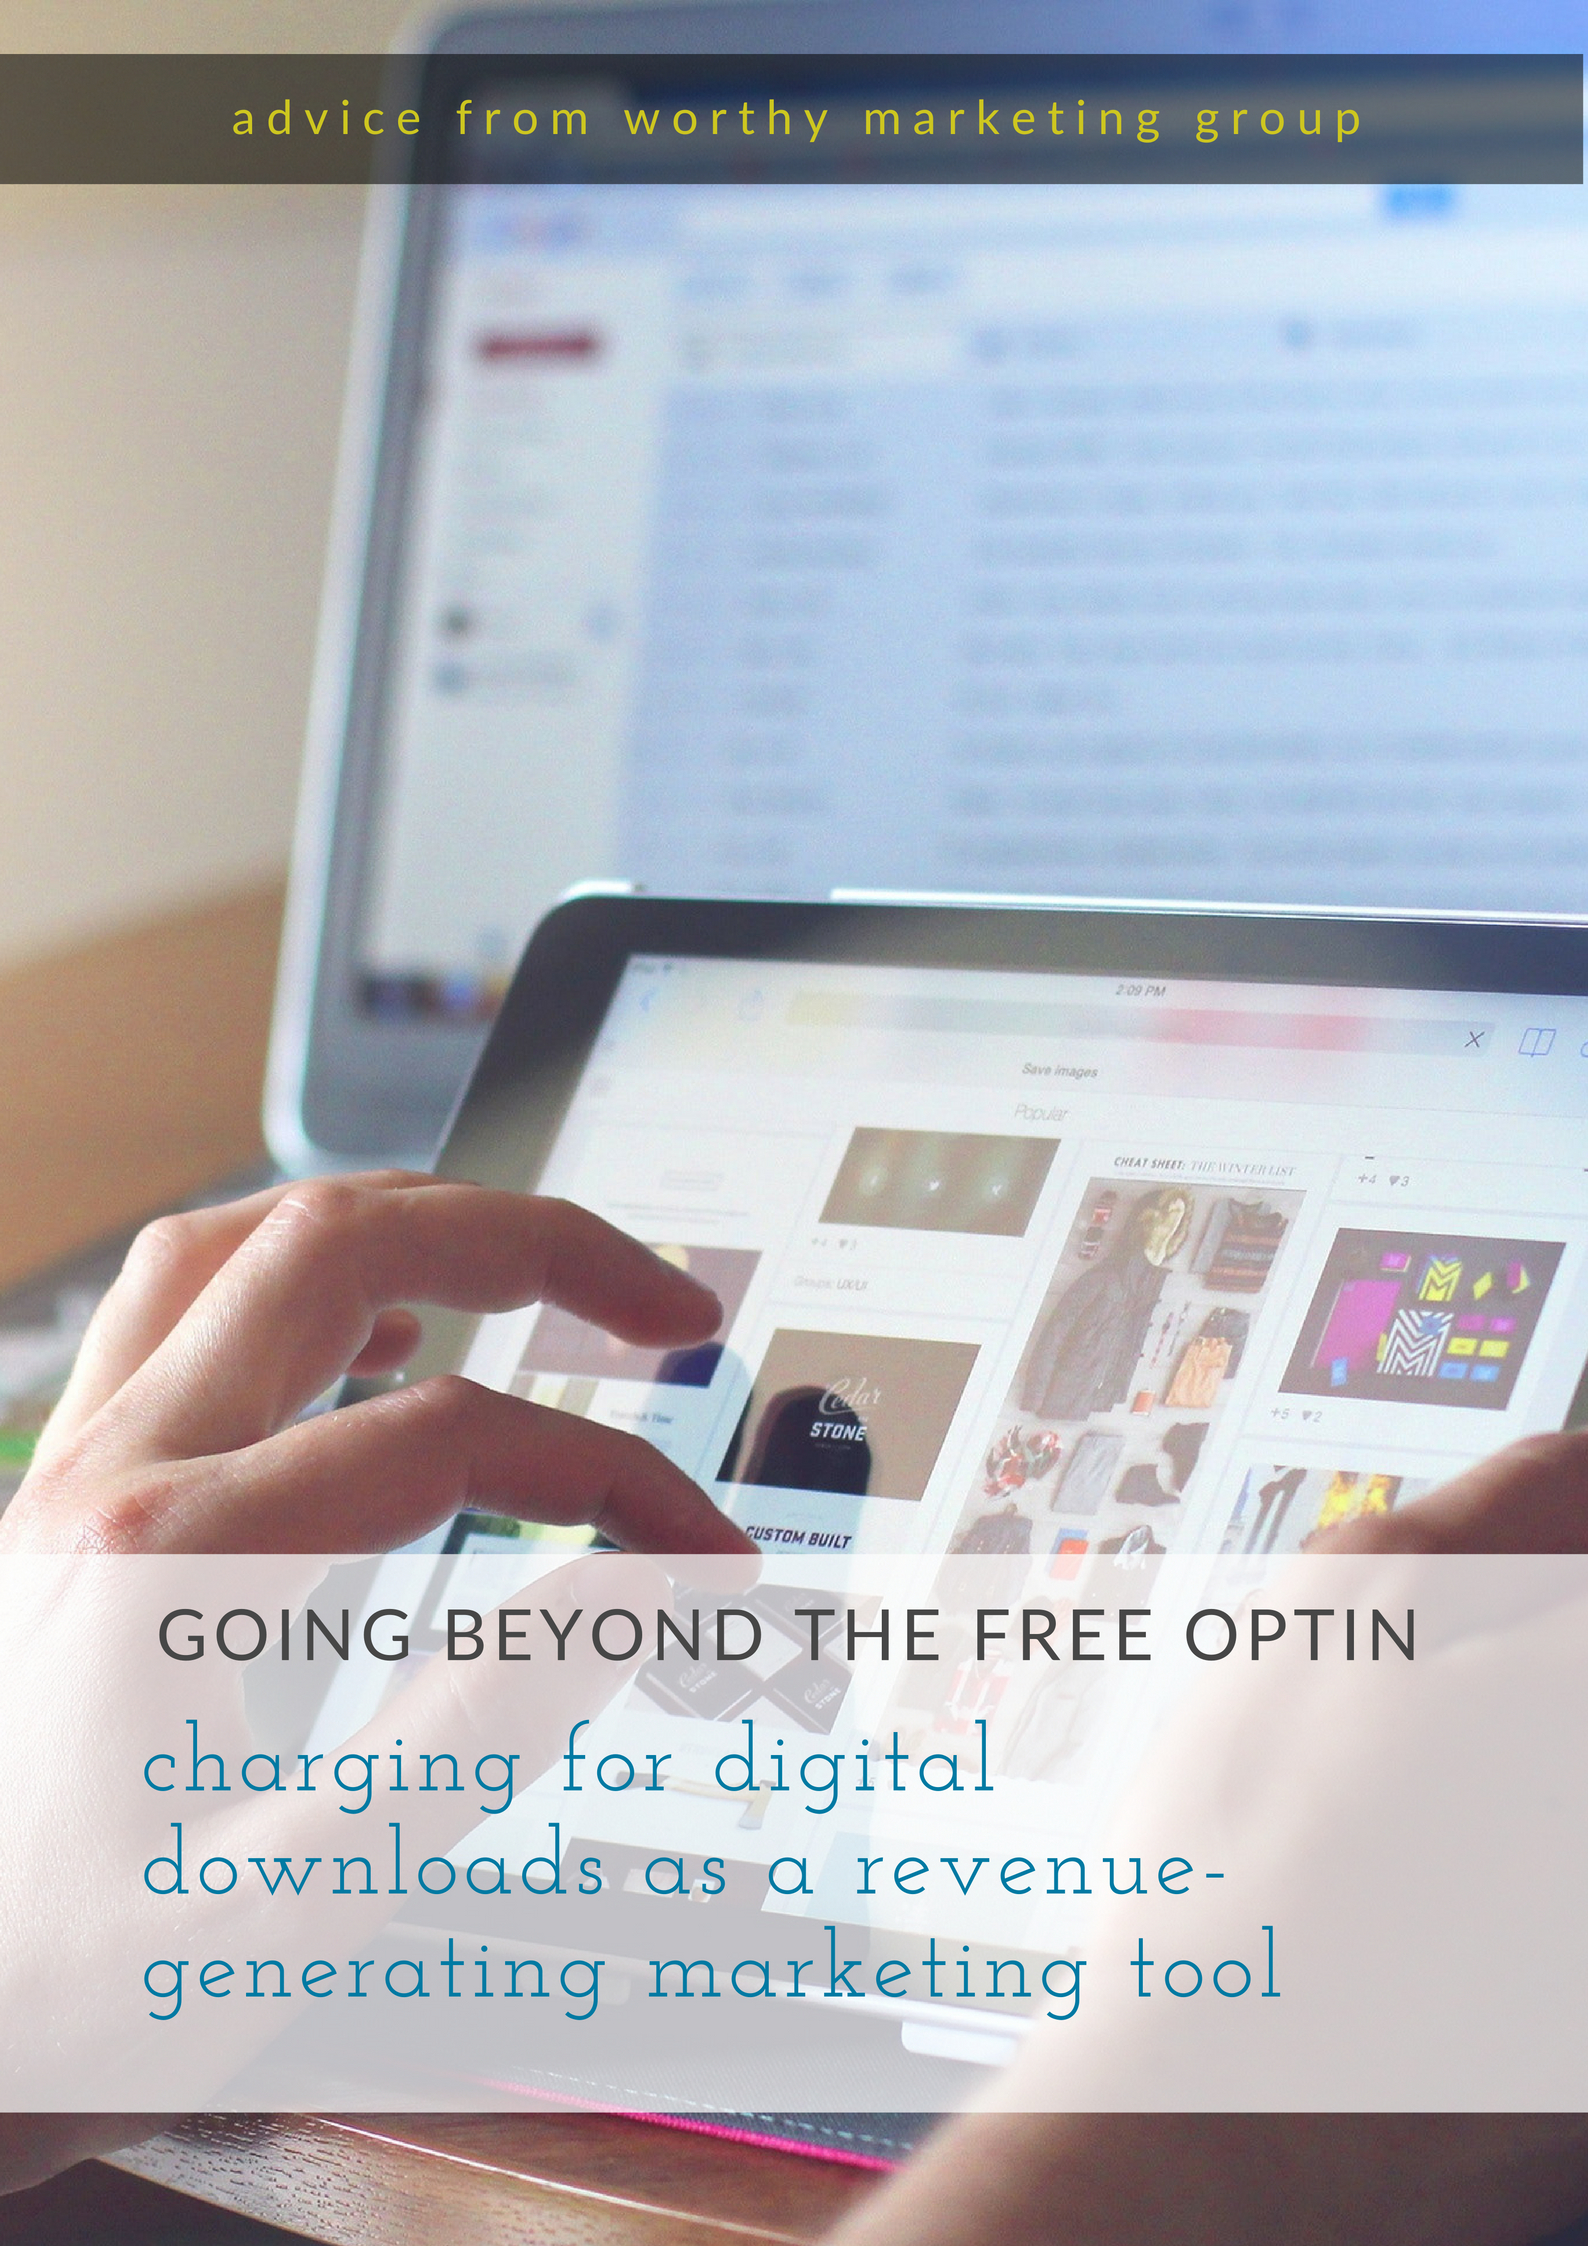 Digital Downloads as a Revenue-Generating Marketing Tool | The Worthy Marketing Group Blog